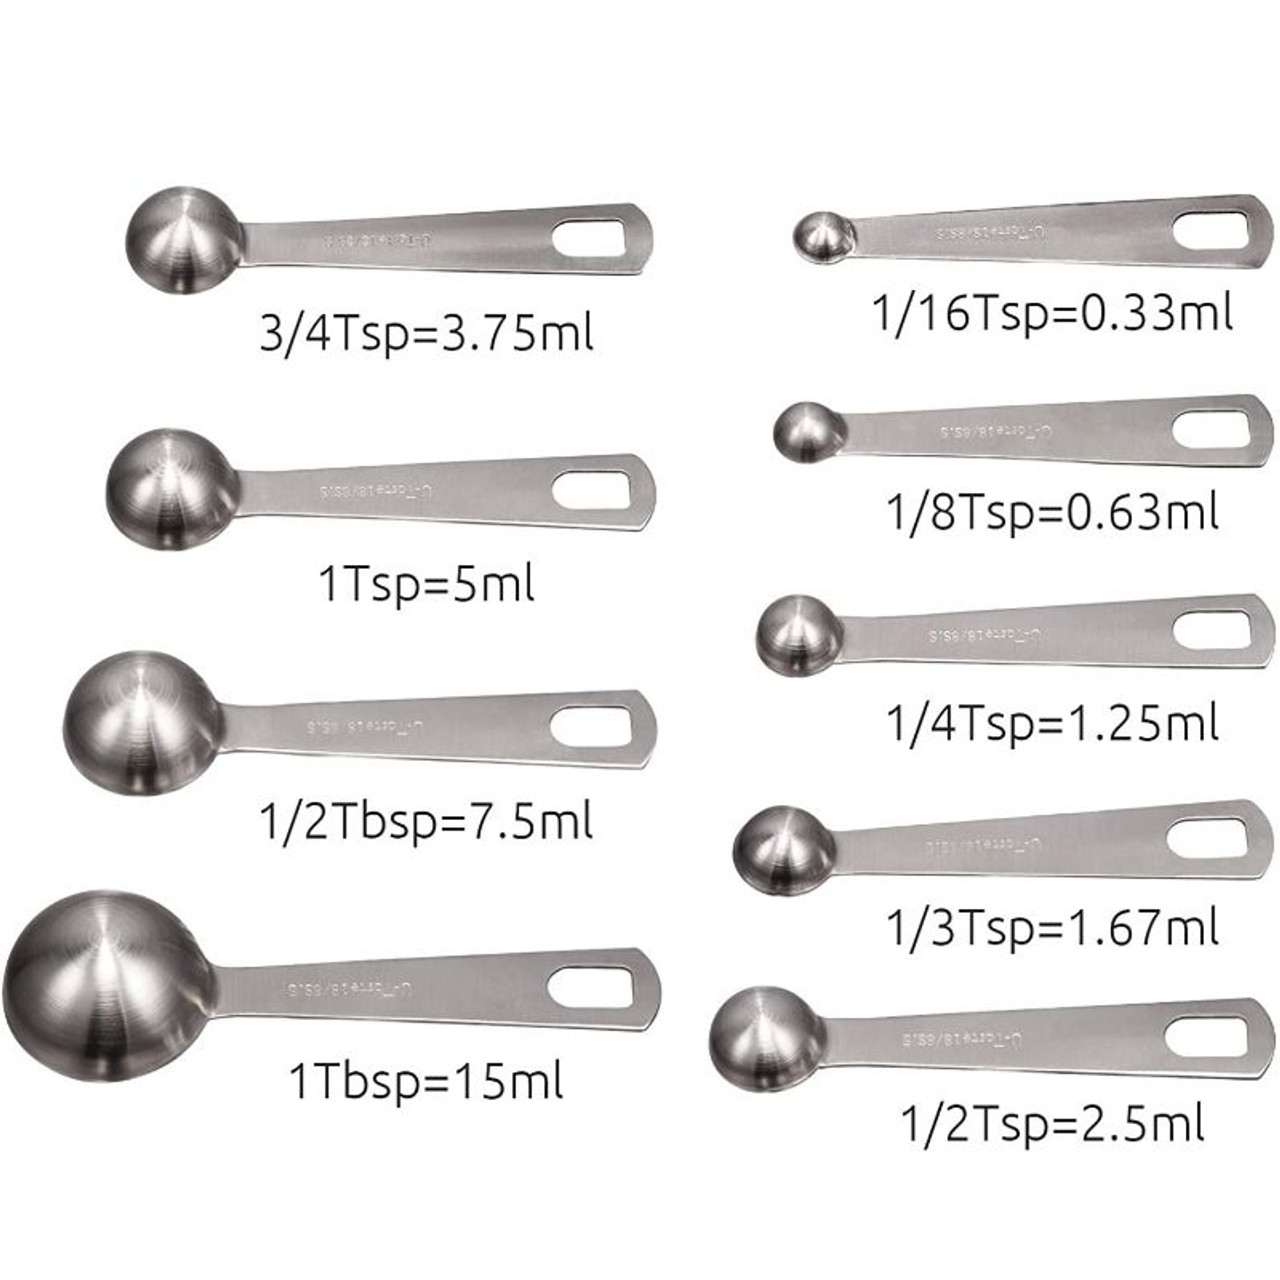 Stainless Steel Measuring Spoons - 9 Piece Set